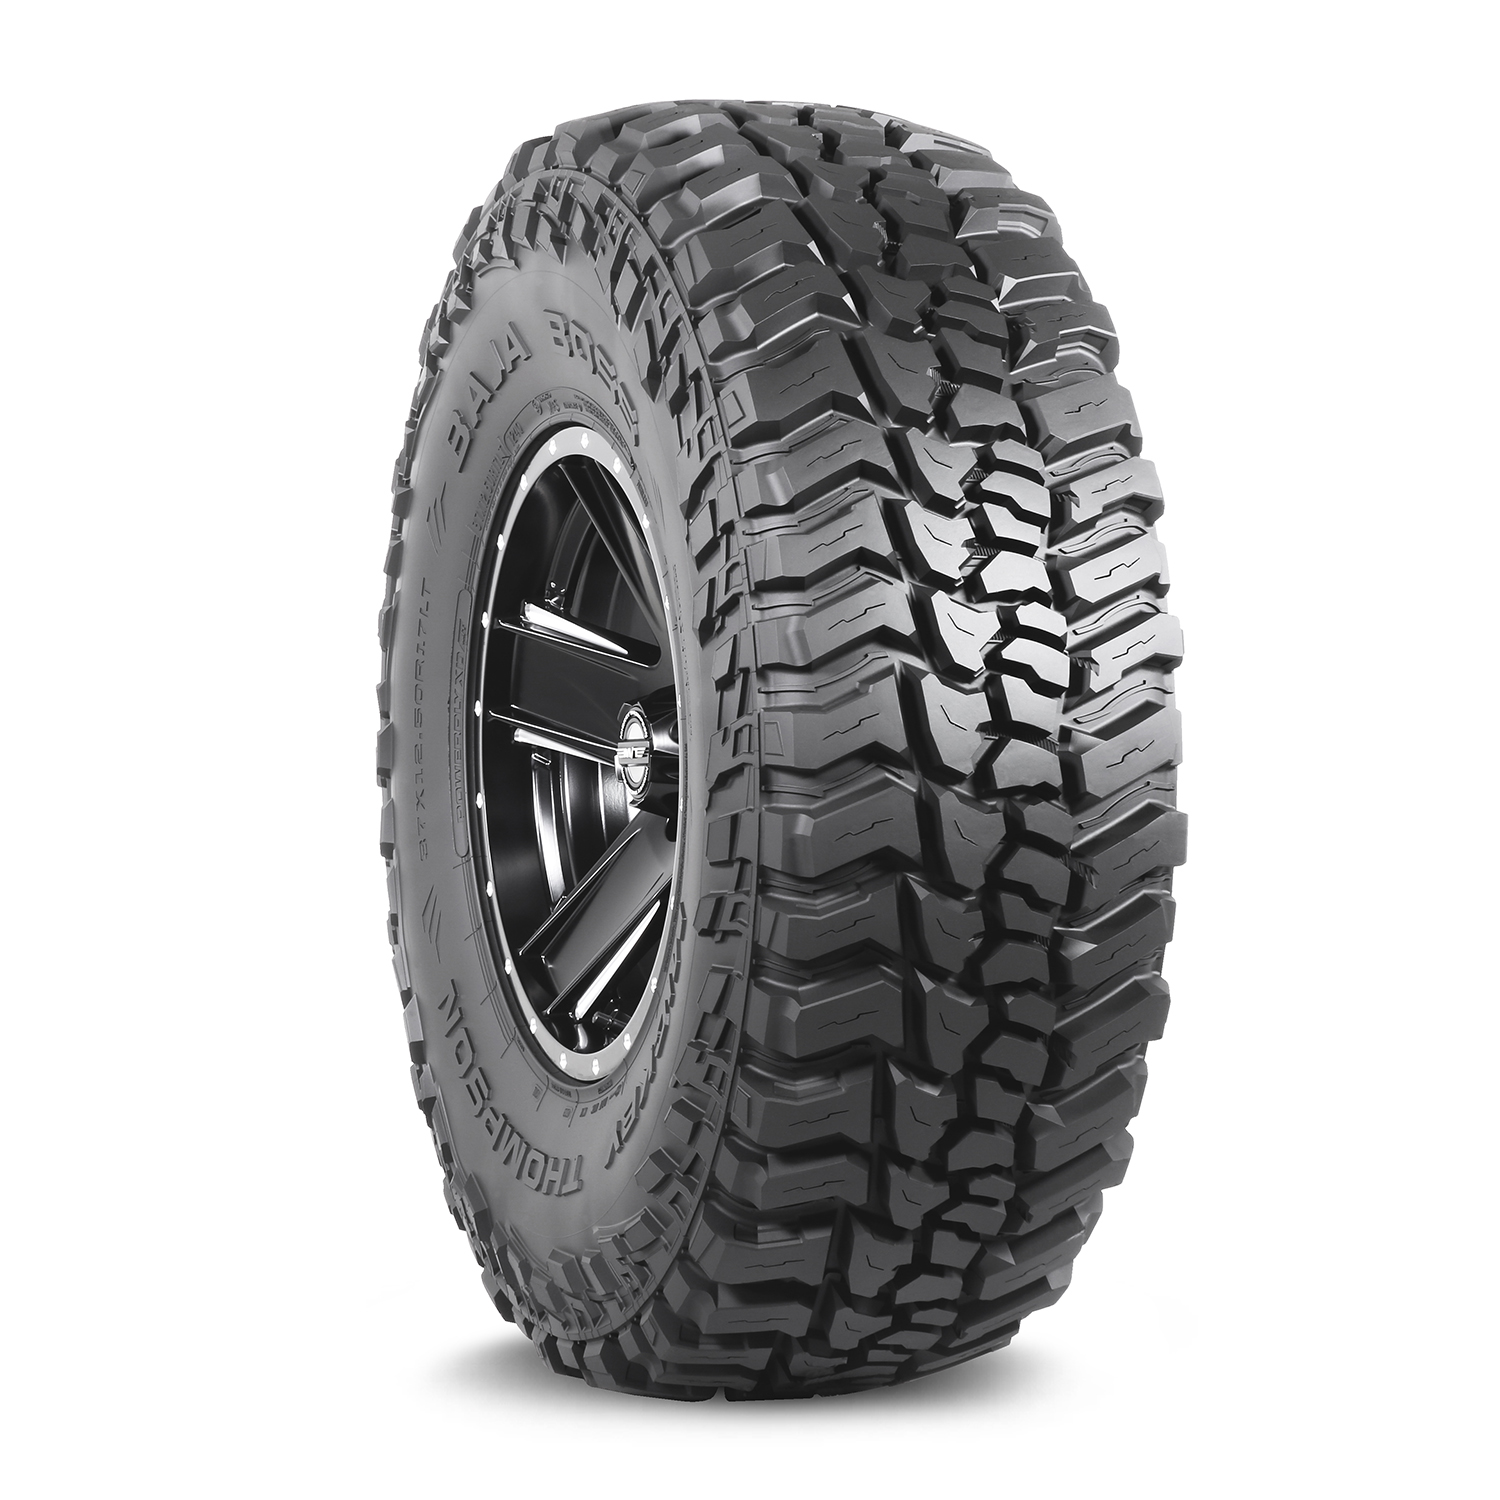 Look for More Sizes of Mickey Thompson Baja Boss Tire